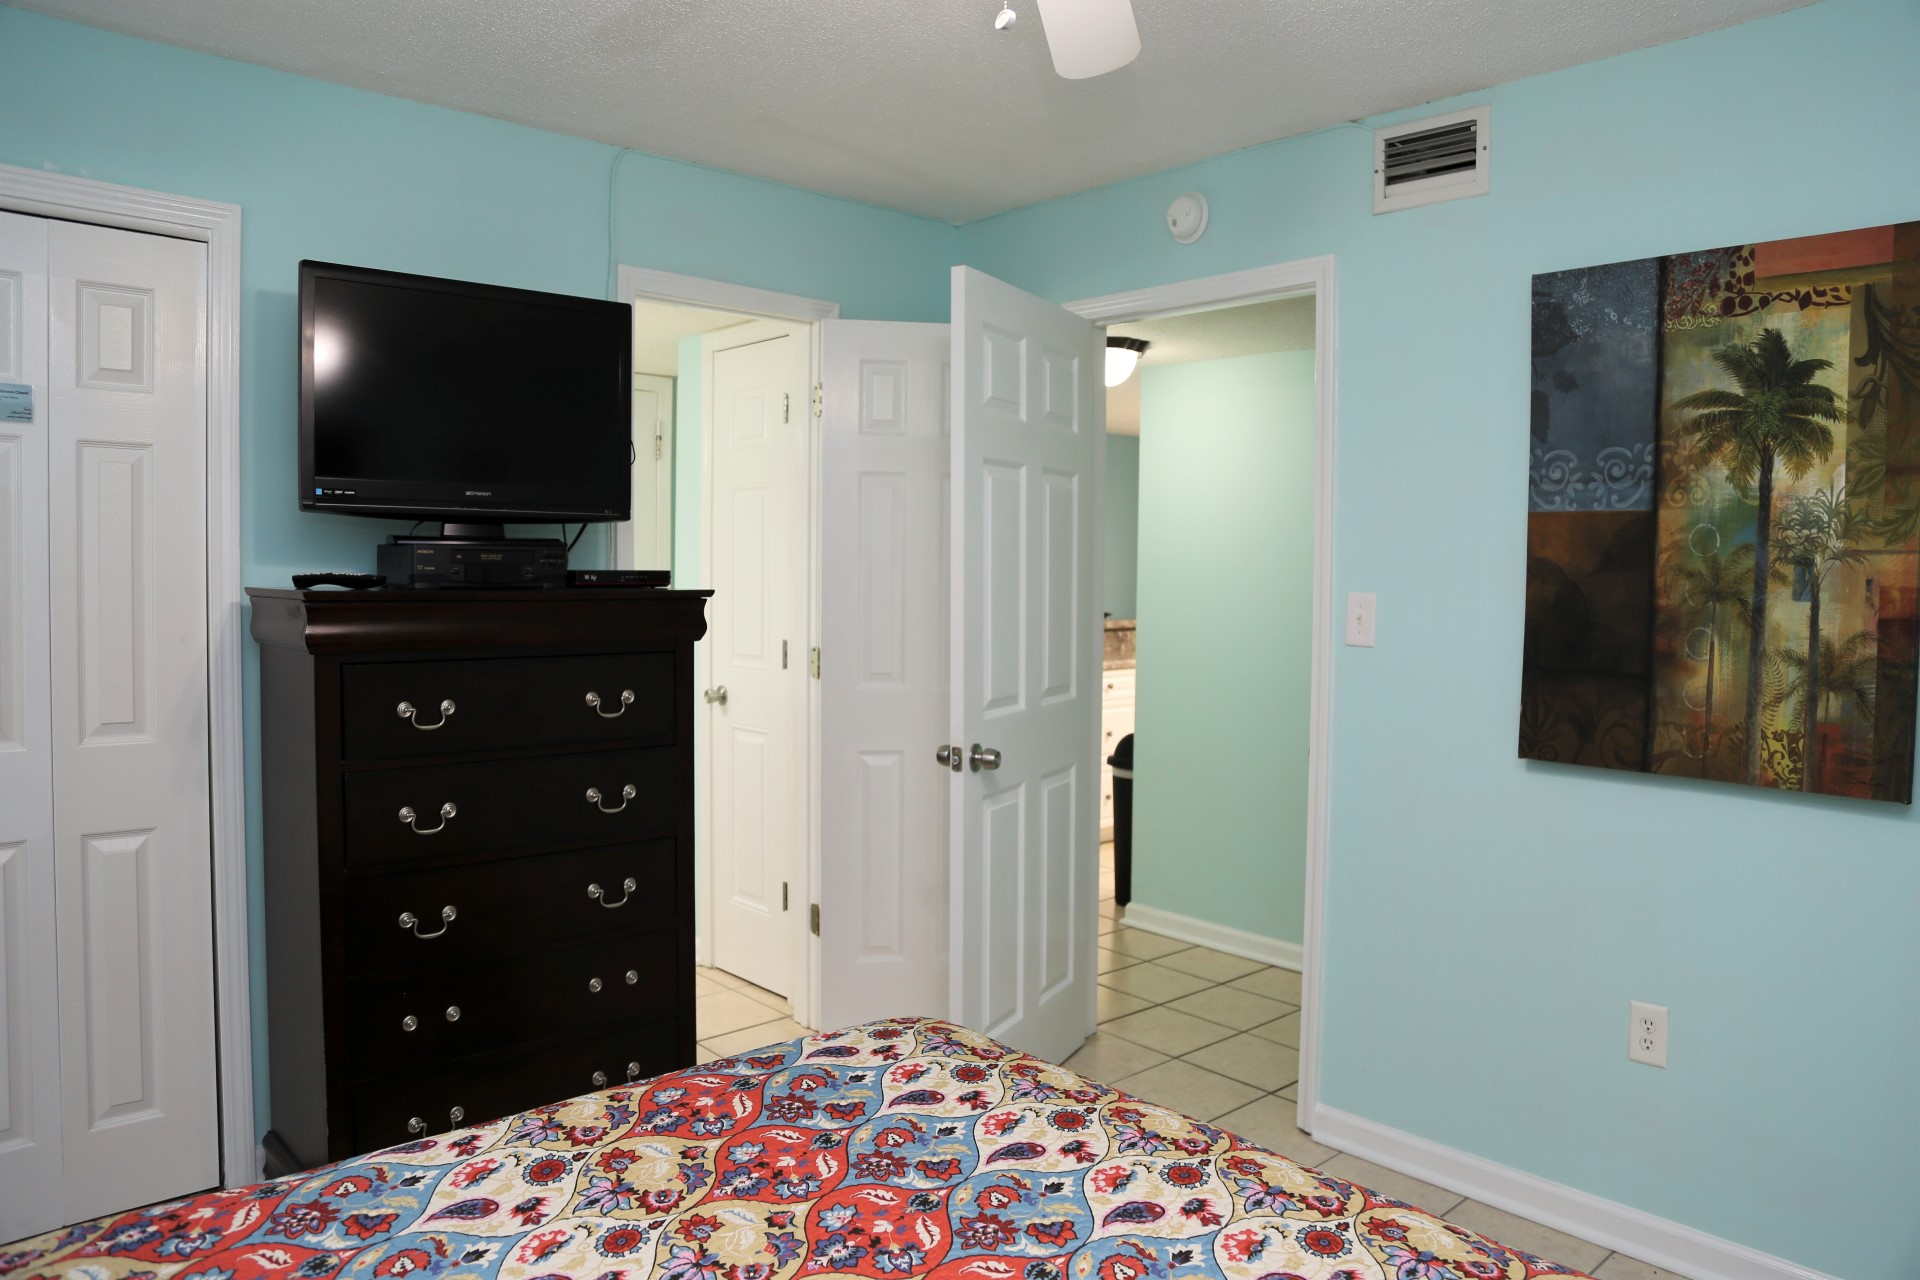 The second bedroom with attached bathroom.